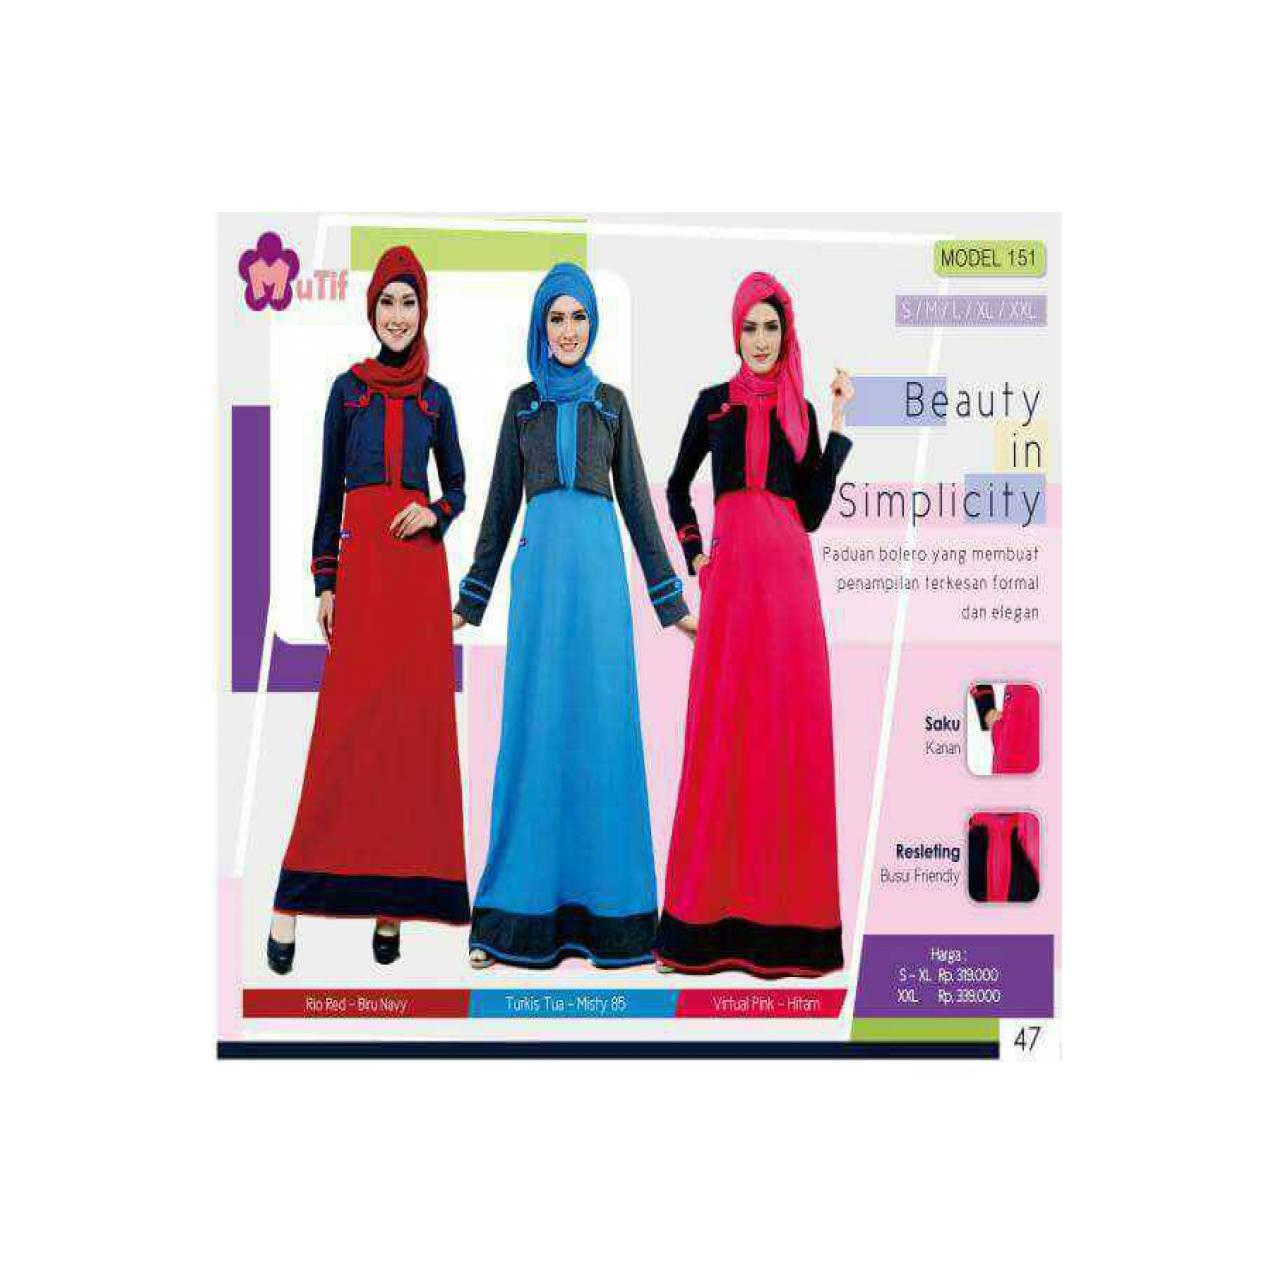 MAXI DRESS - MUTIF - M151 SMLXL - GAMIS MODEL BOLERO - DRESS MUSLIM